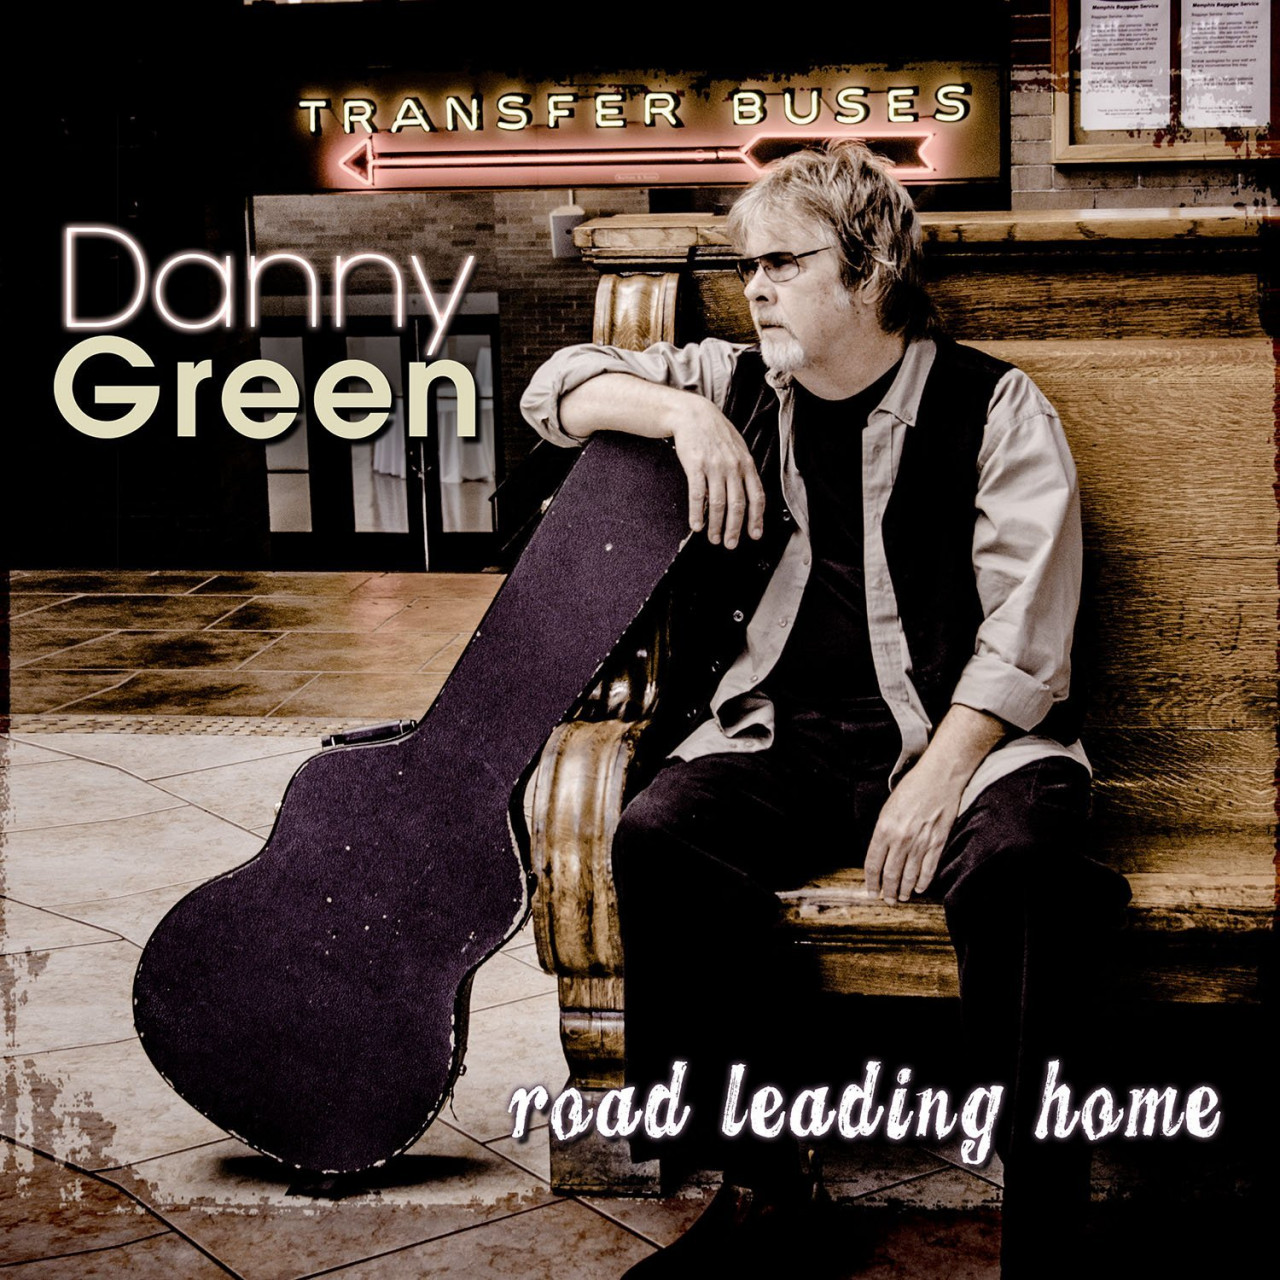 Danny Green - Leading Home